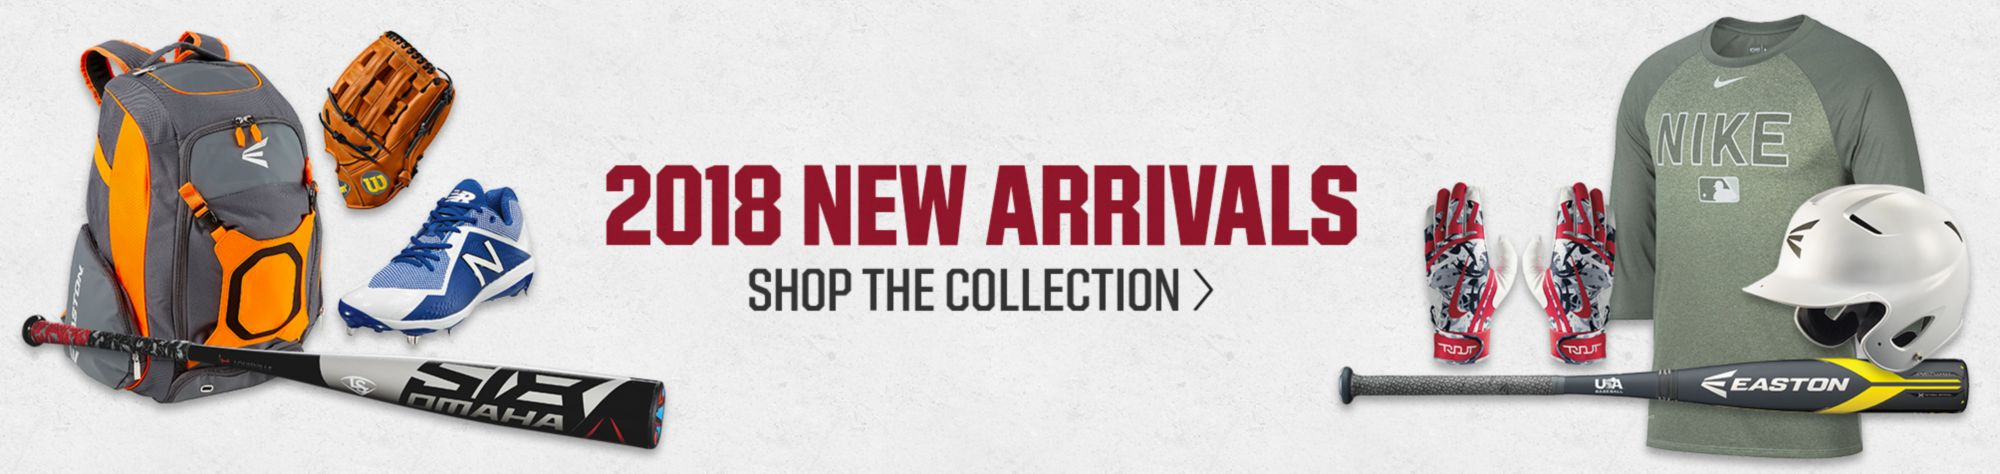 2018 NEW ARRIVALS Shop The Collection